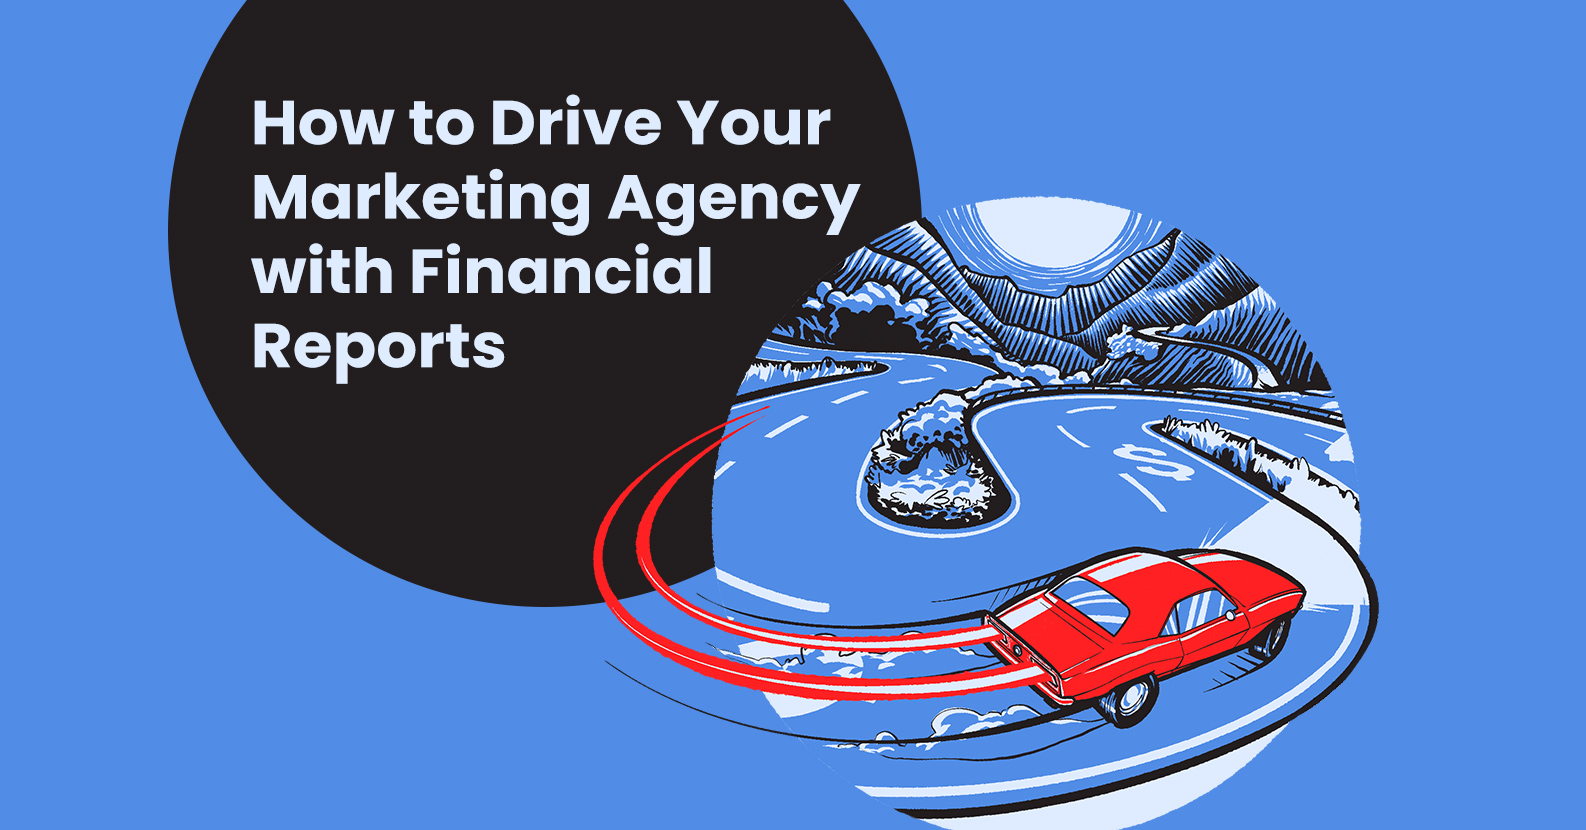 Drive Your Marketing Agency with Financial Business Reports